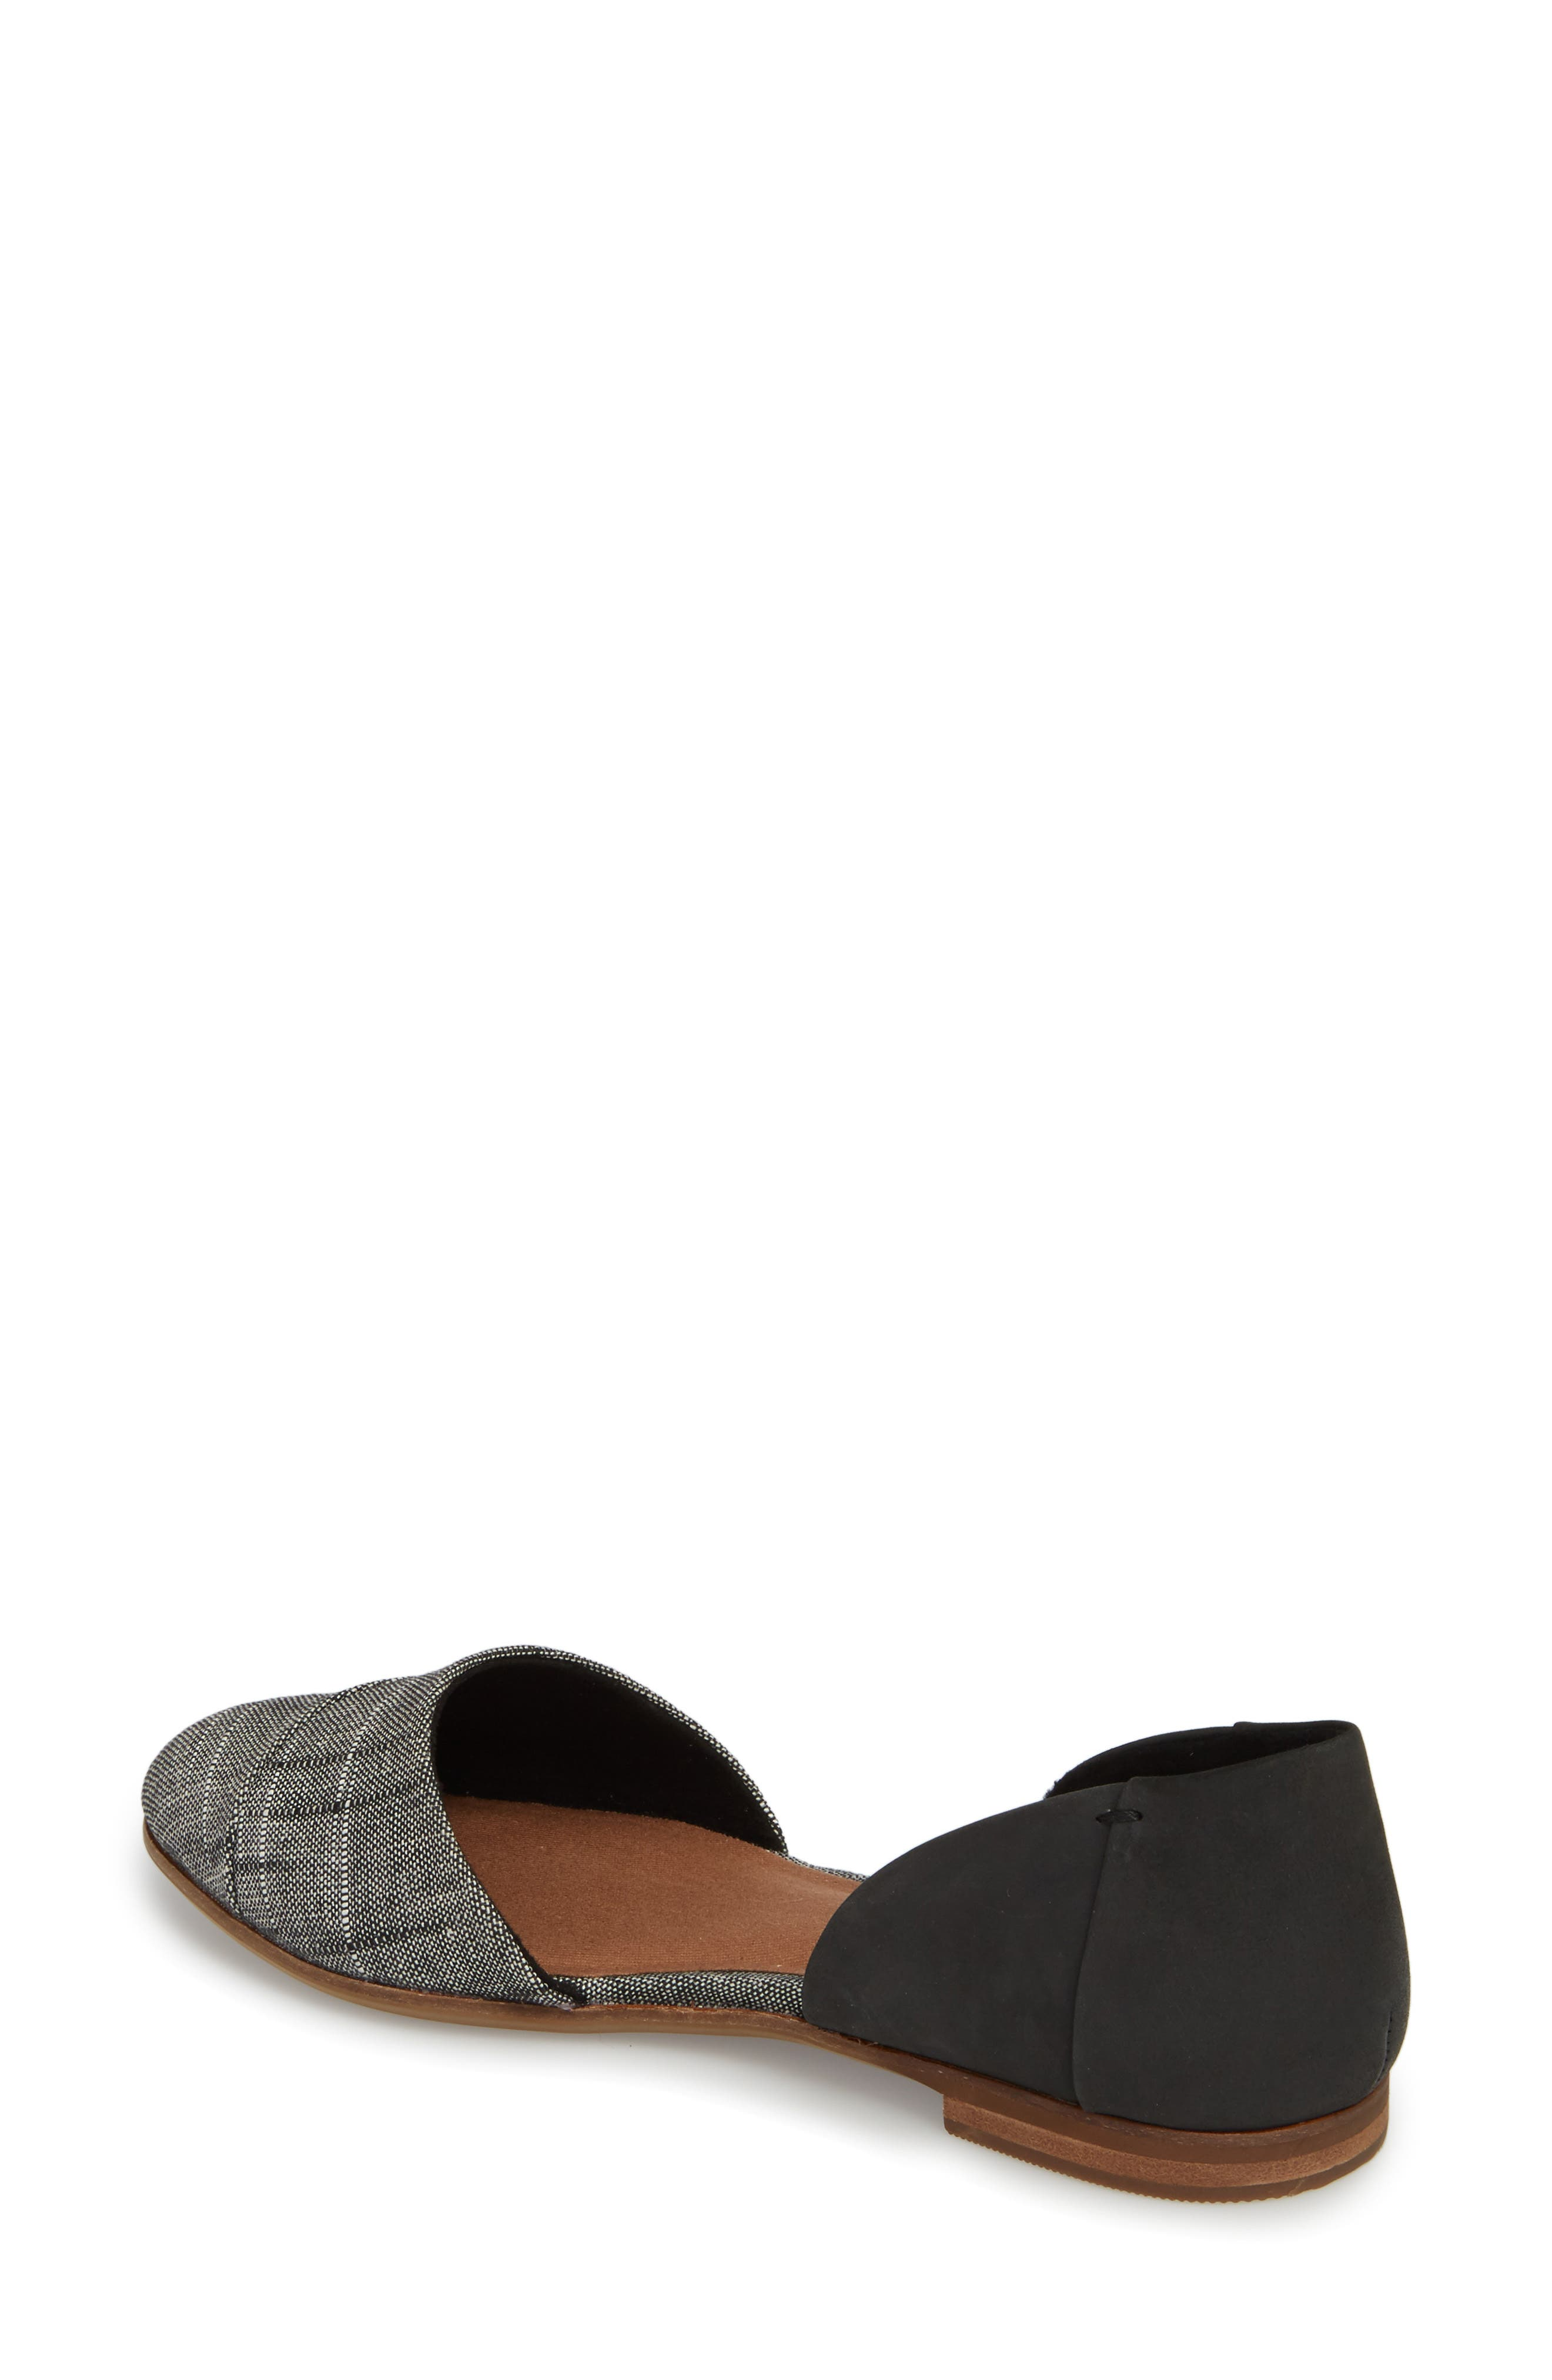 Jutti d'Orsay Flat,                             Alternate thumbnail 2, color,                             BLACK LEATHER/ CHAMBRAY